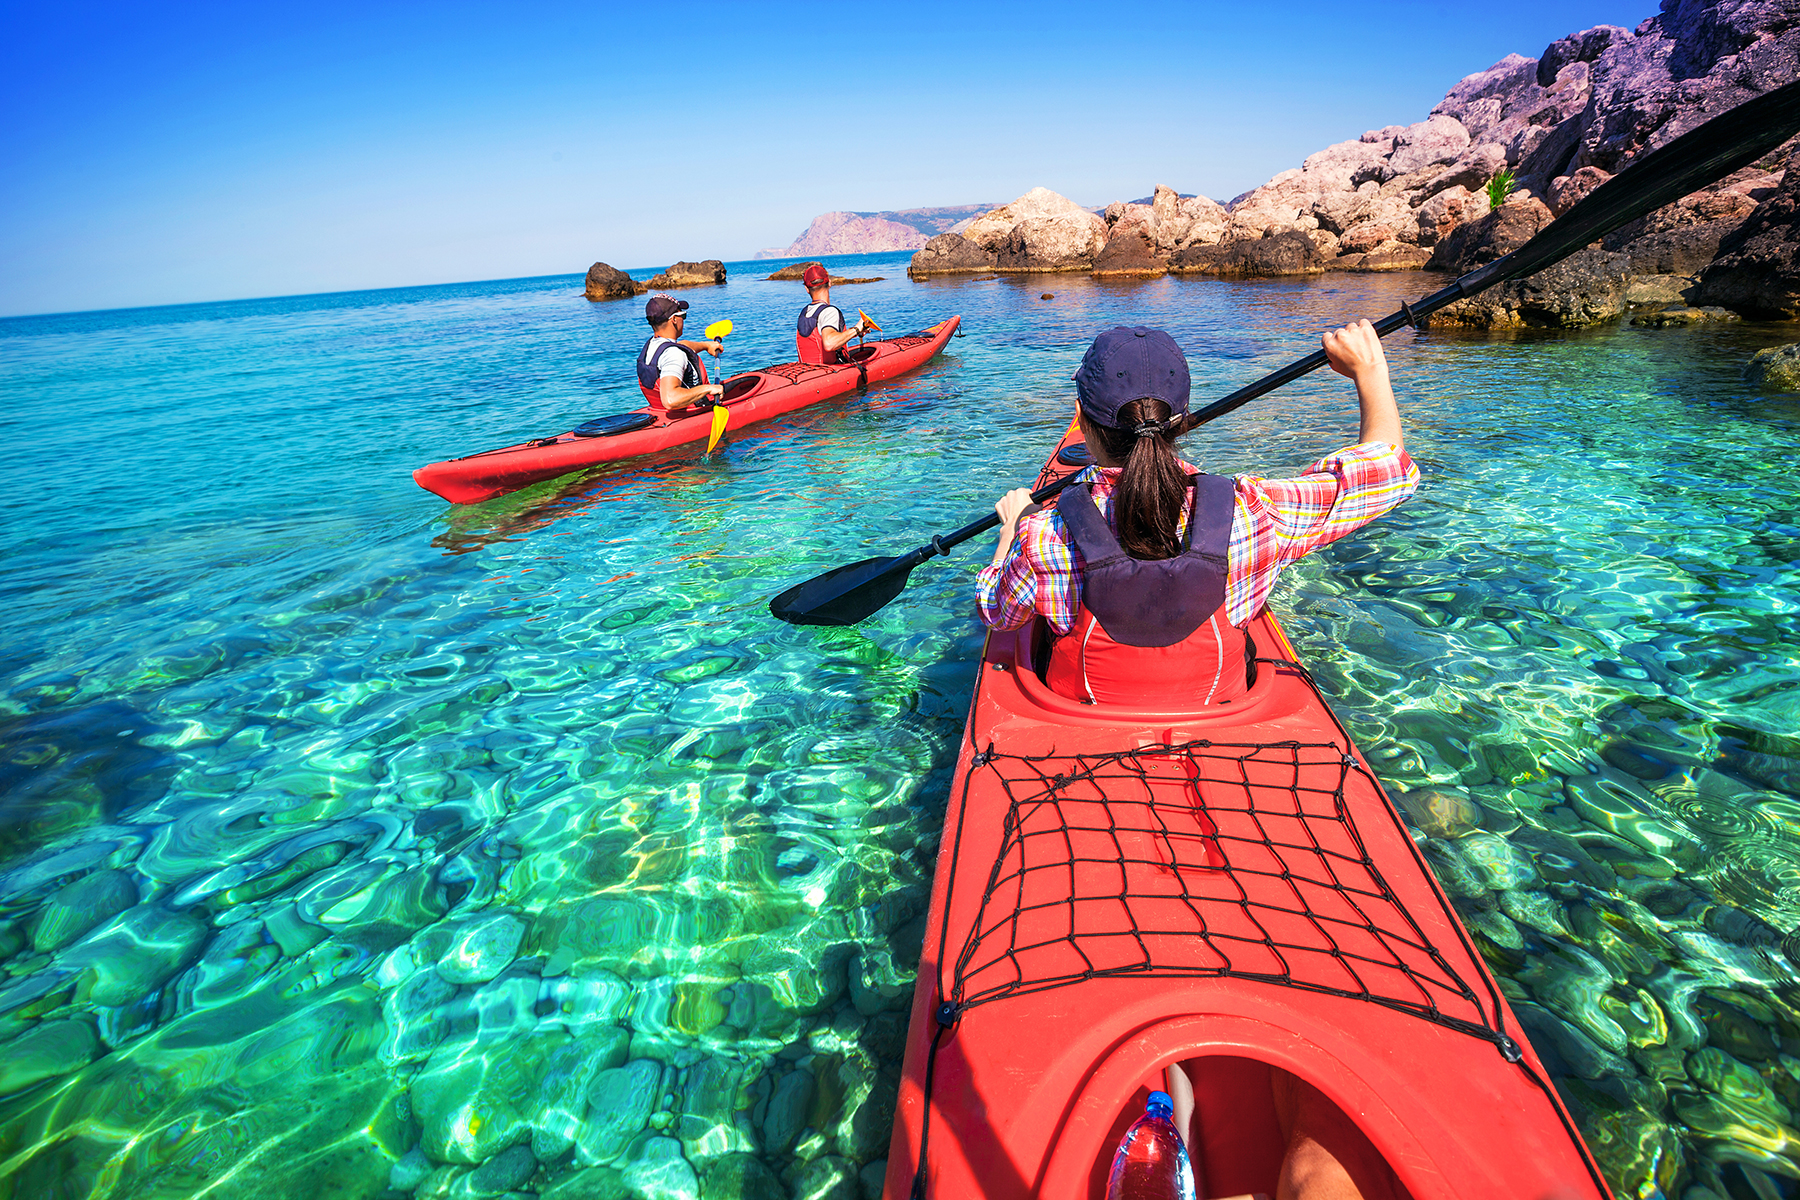 Canoing with kayak